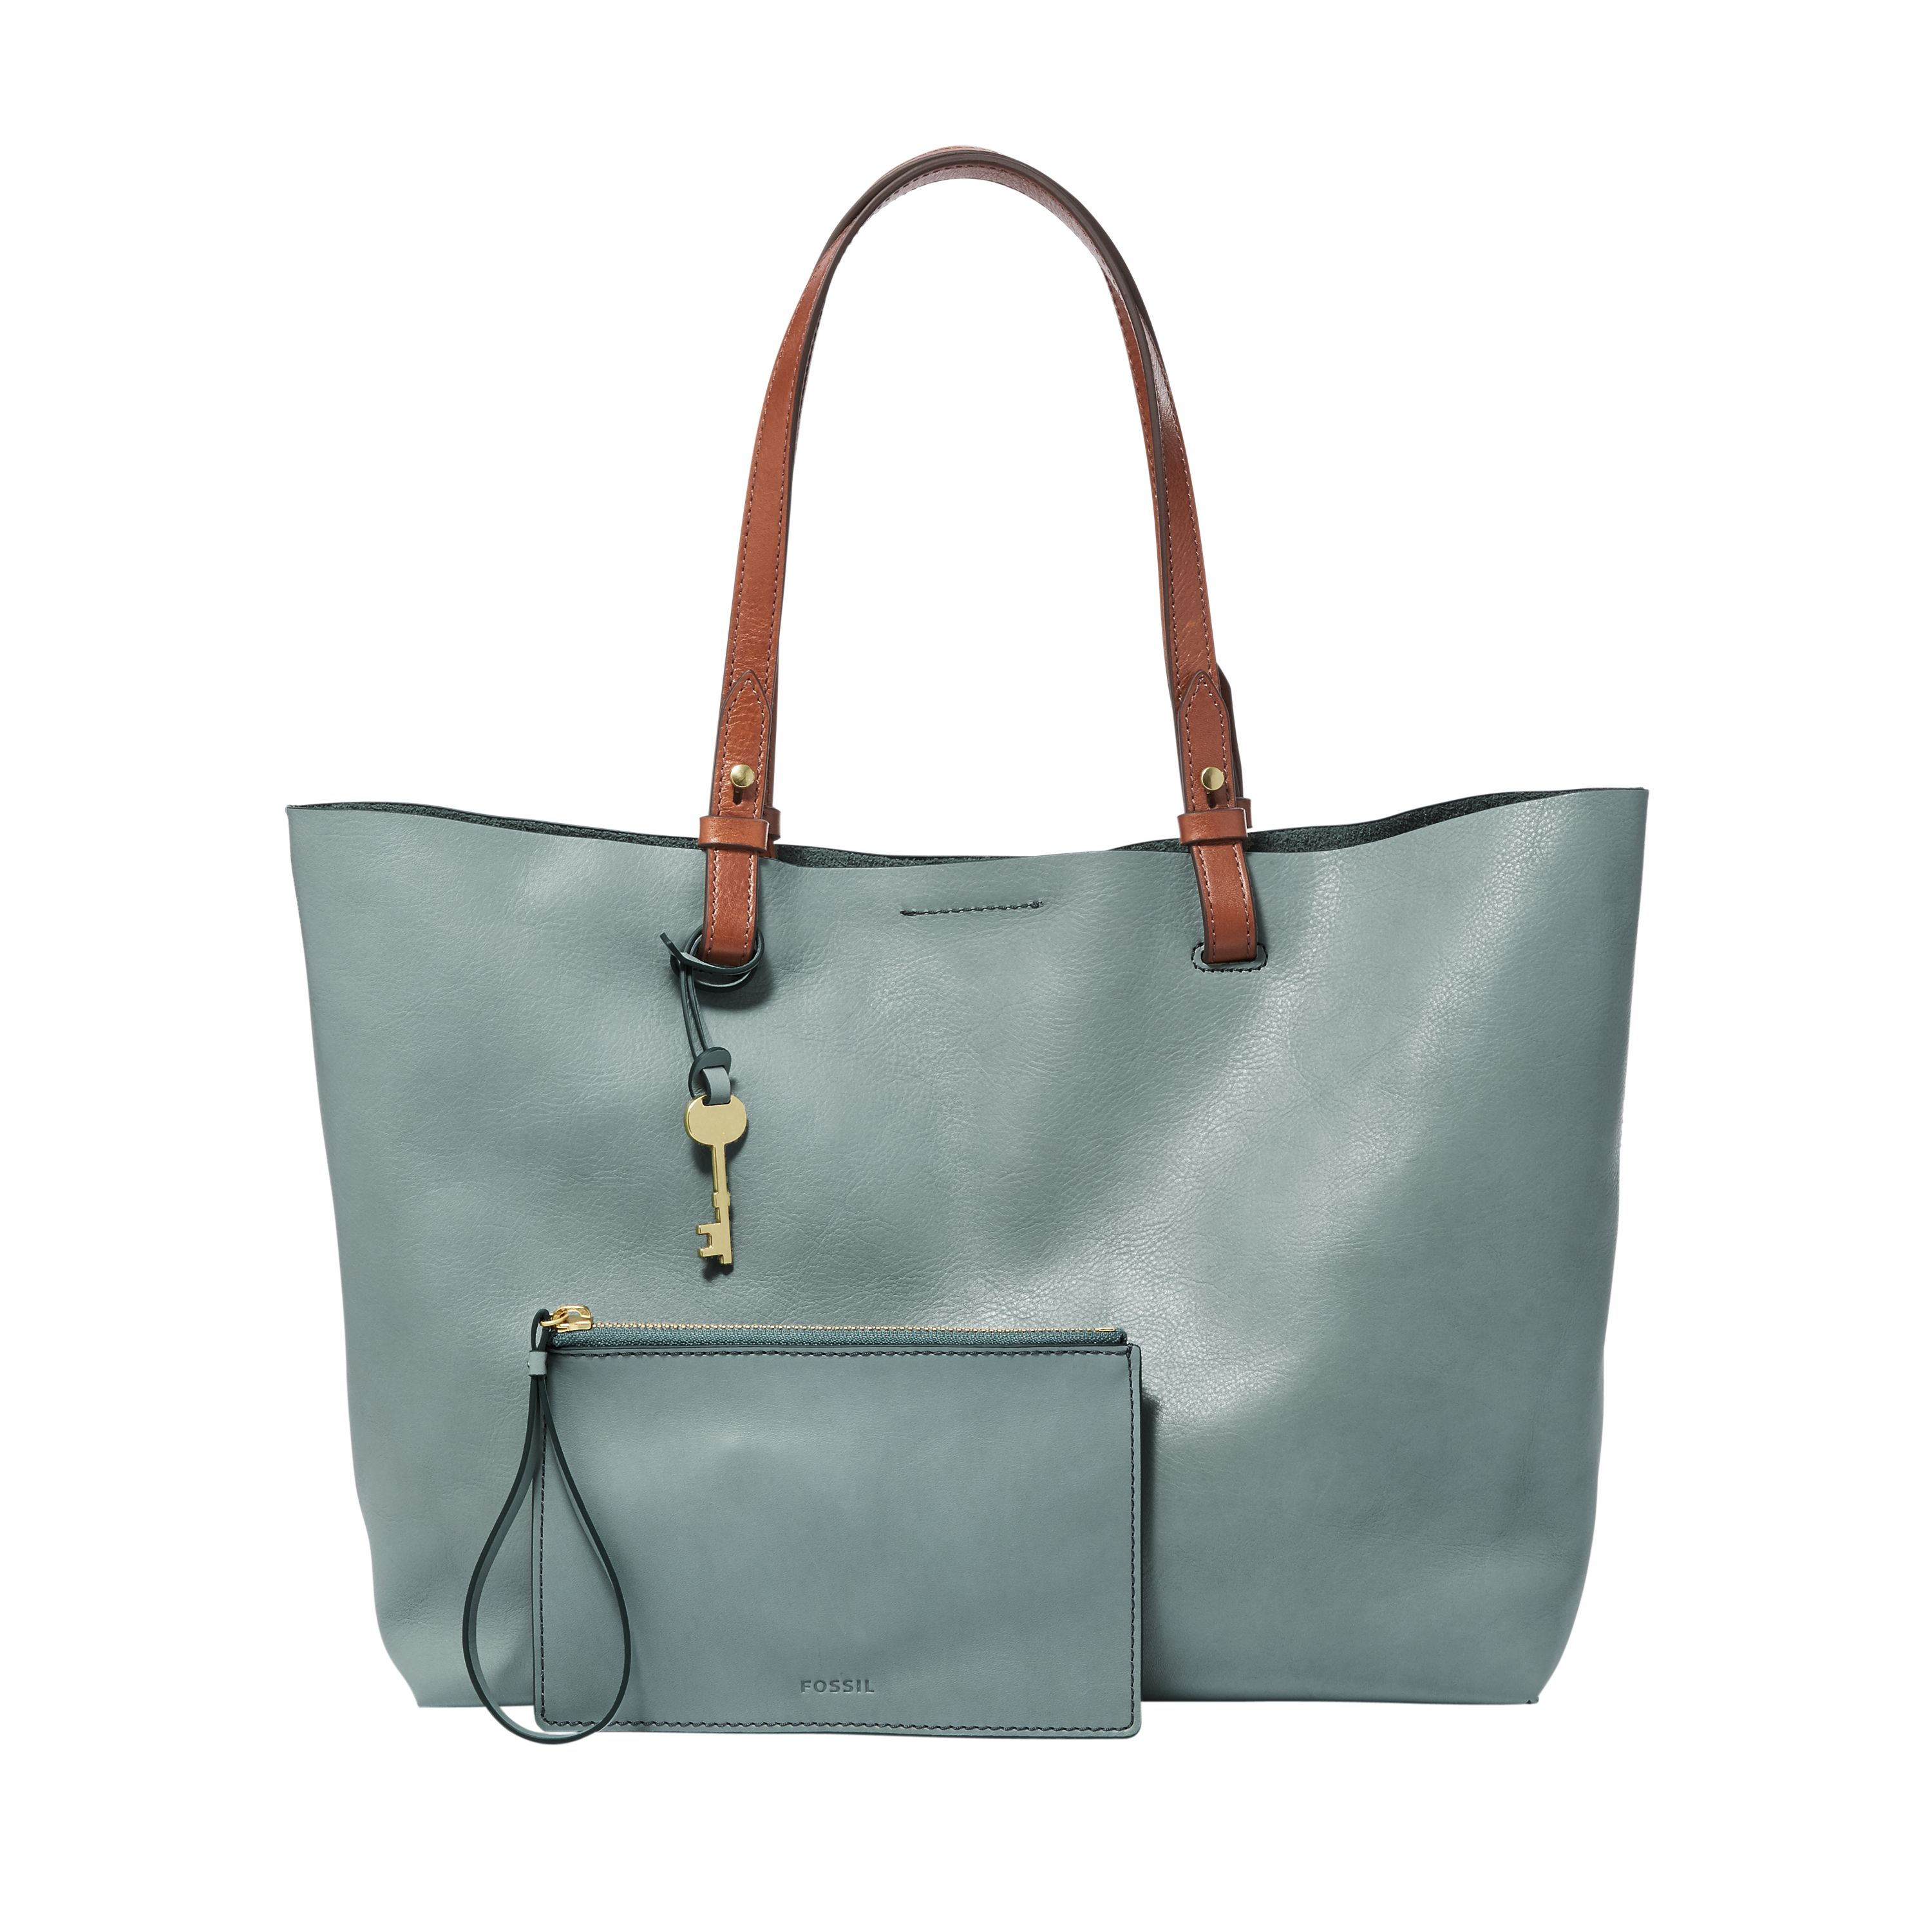 Gabee is an Australian luxury fashion accessories company known for its leather handbags, bags, backpacks & satchels. Free & express same day shipping.